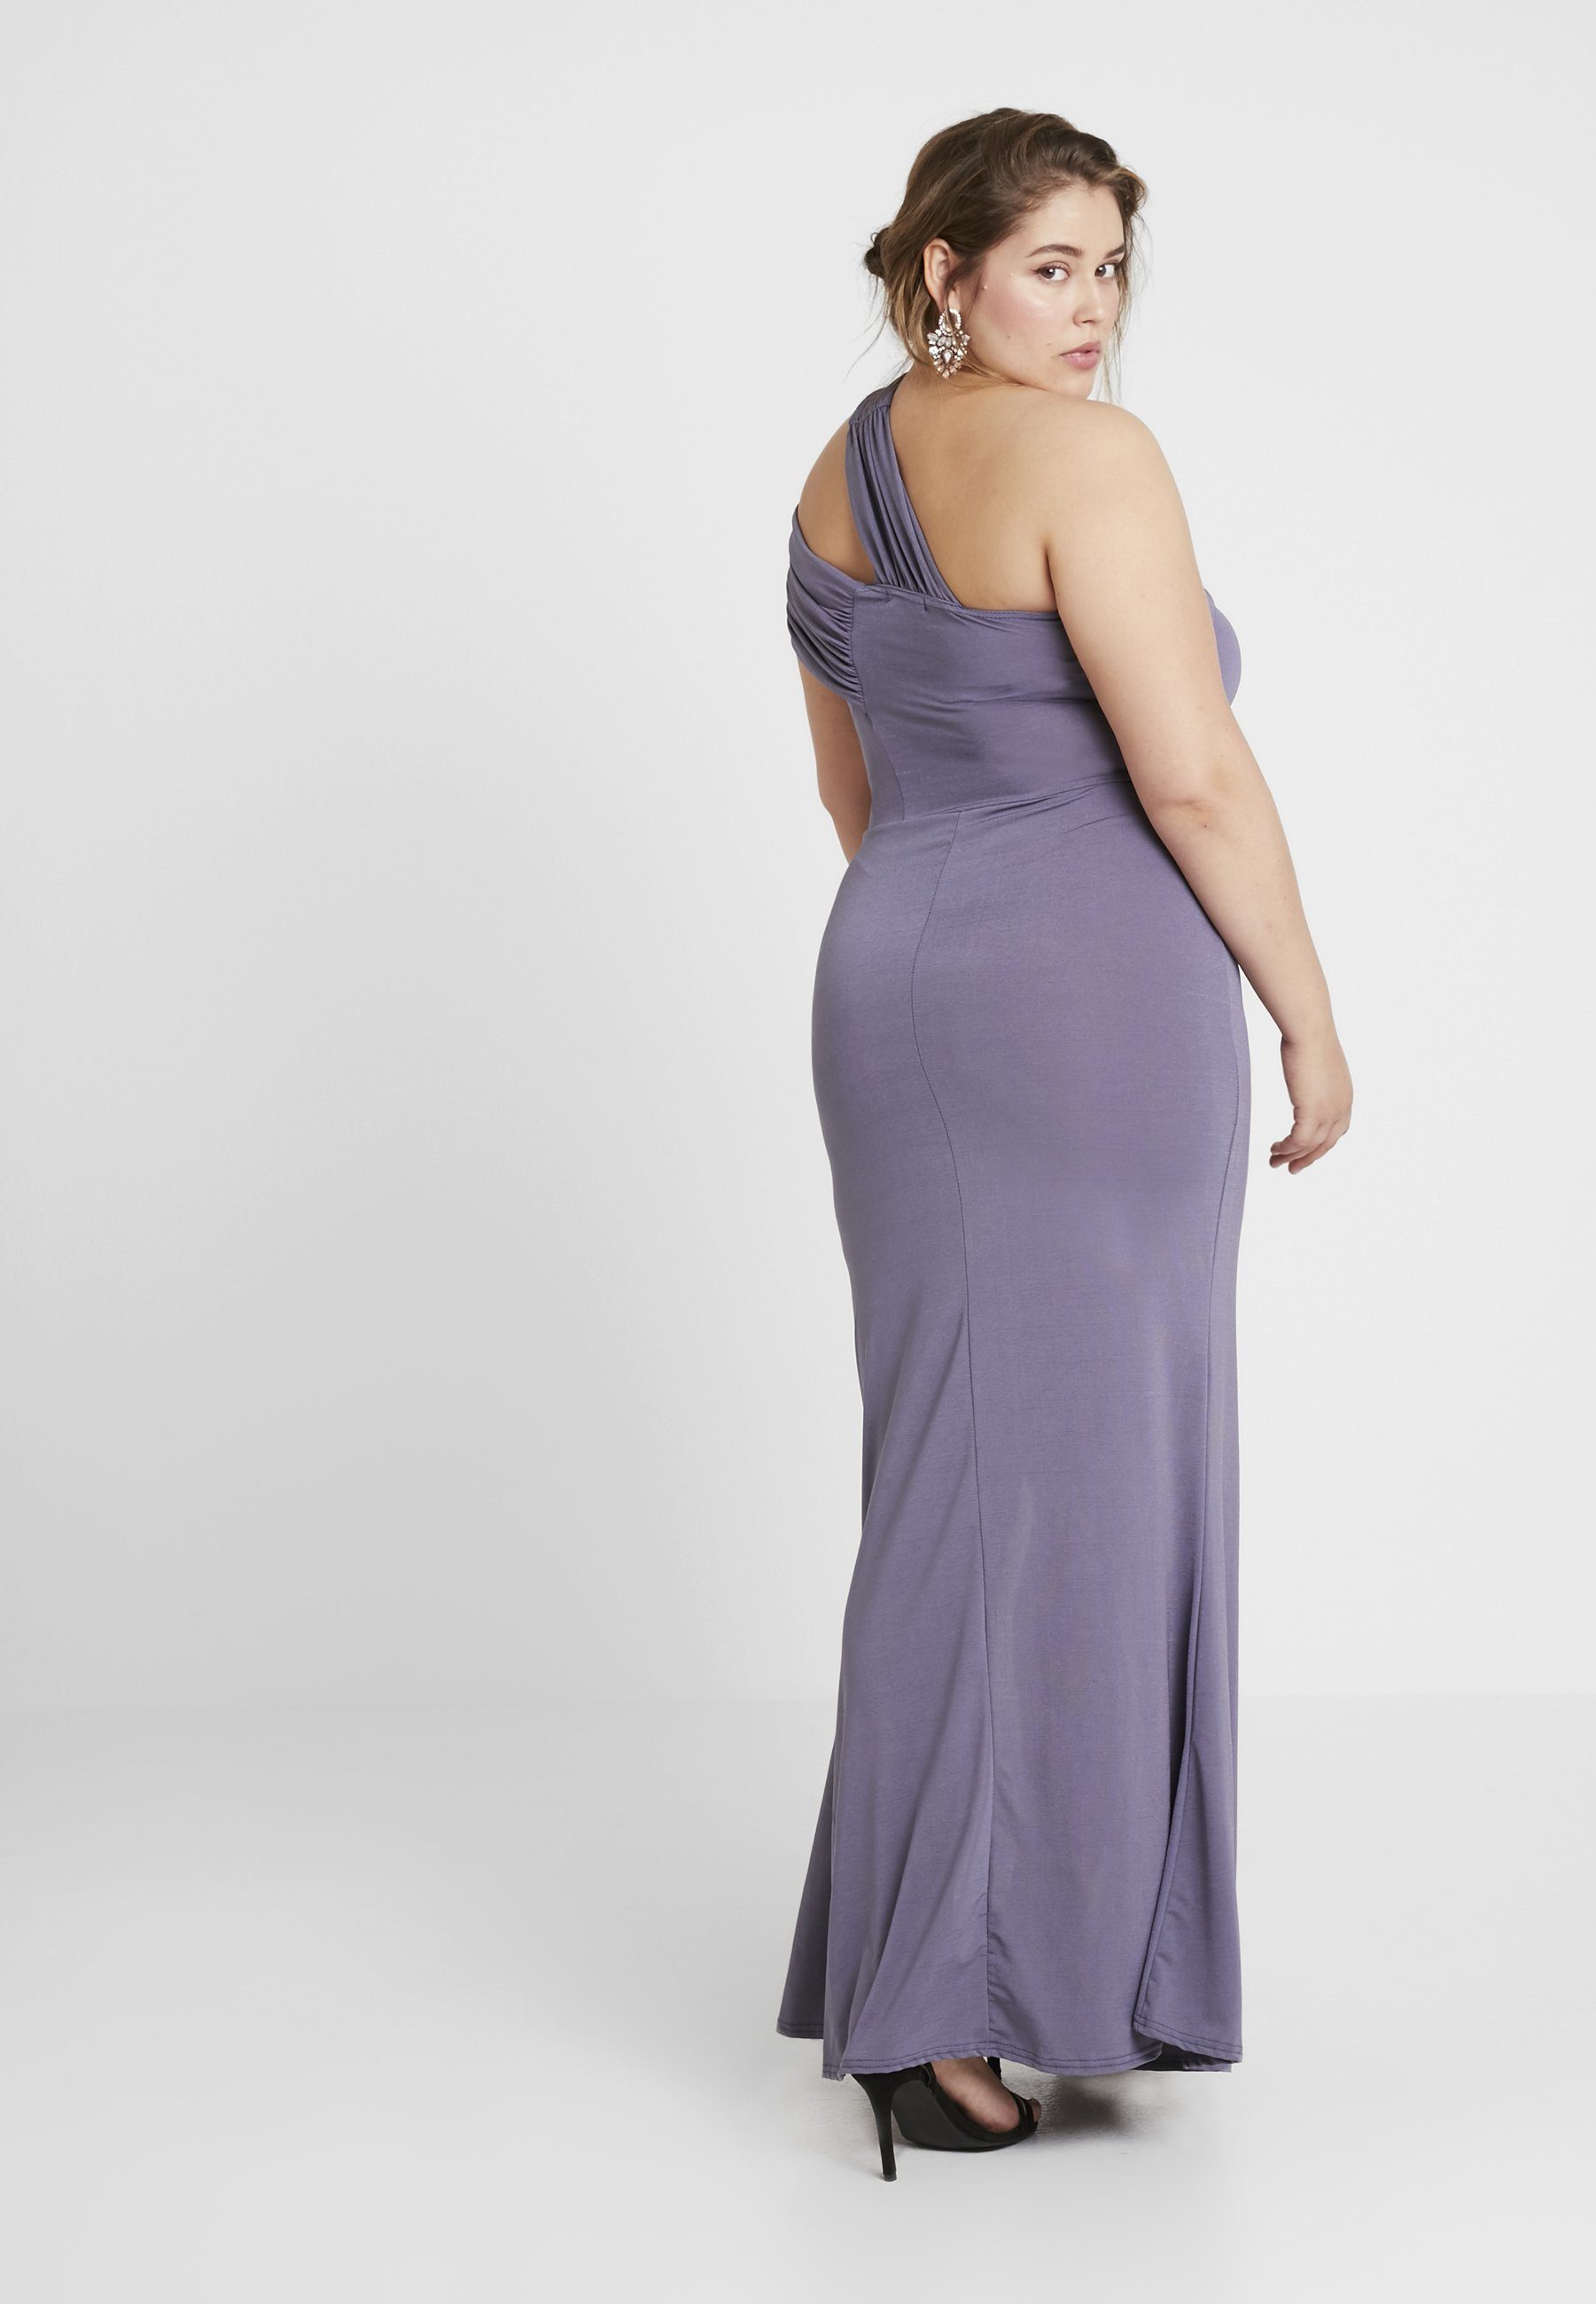 Maxi Plus Shoulder Cocktail One De Missguided Lilac DressRobe IWDH2Y9E